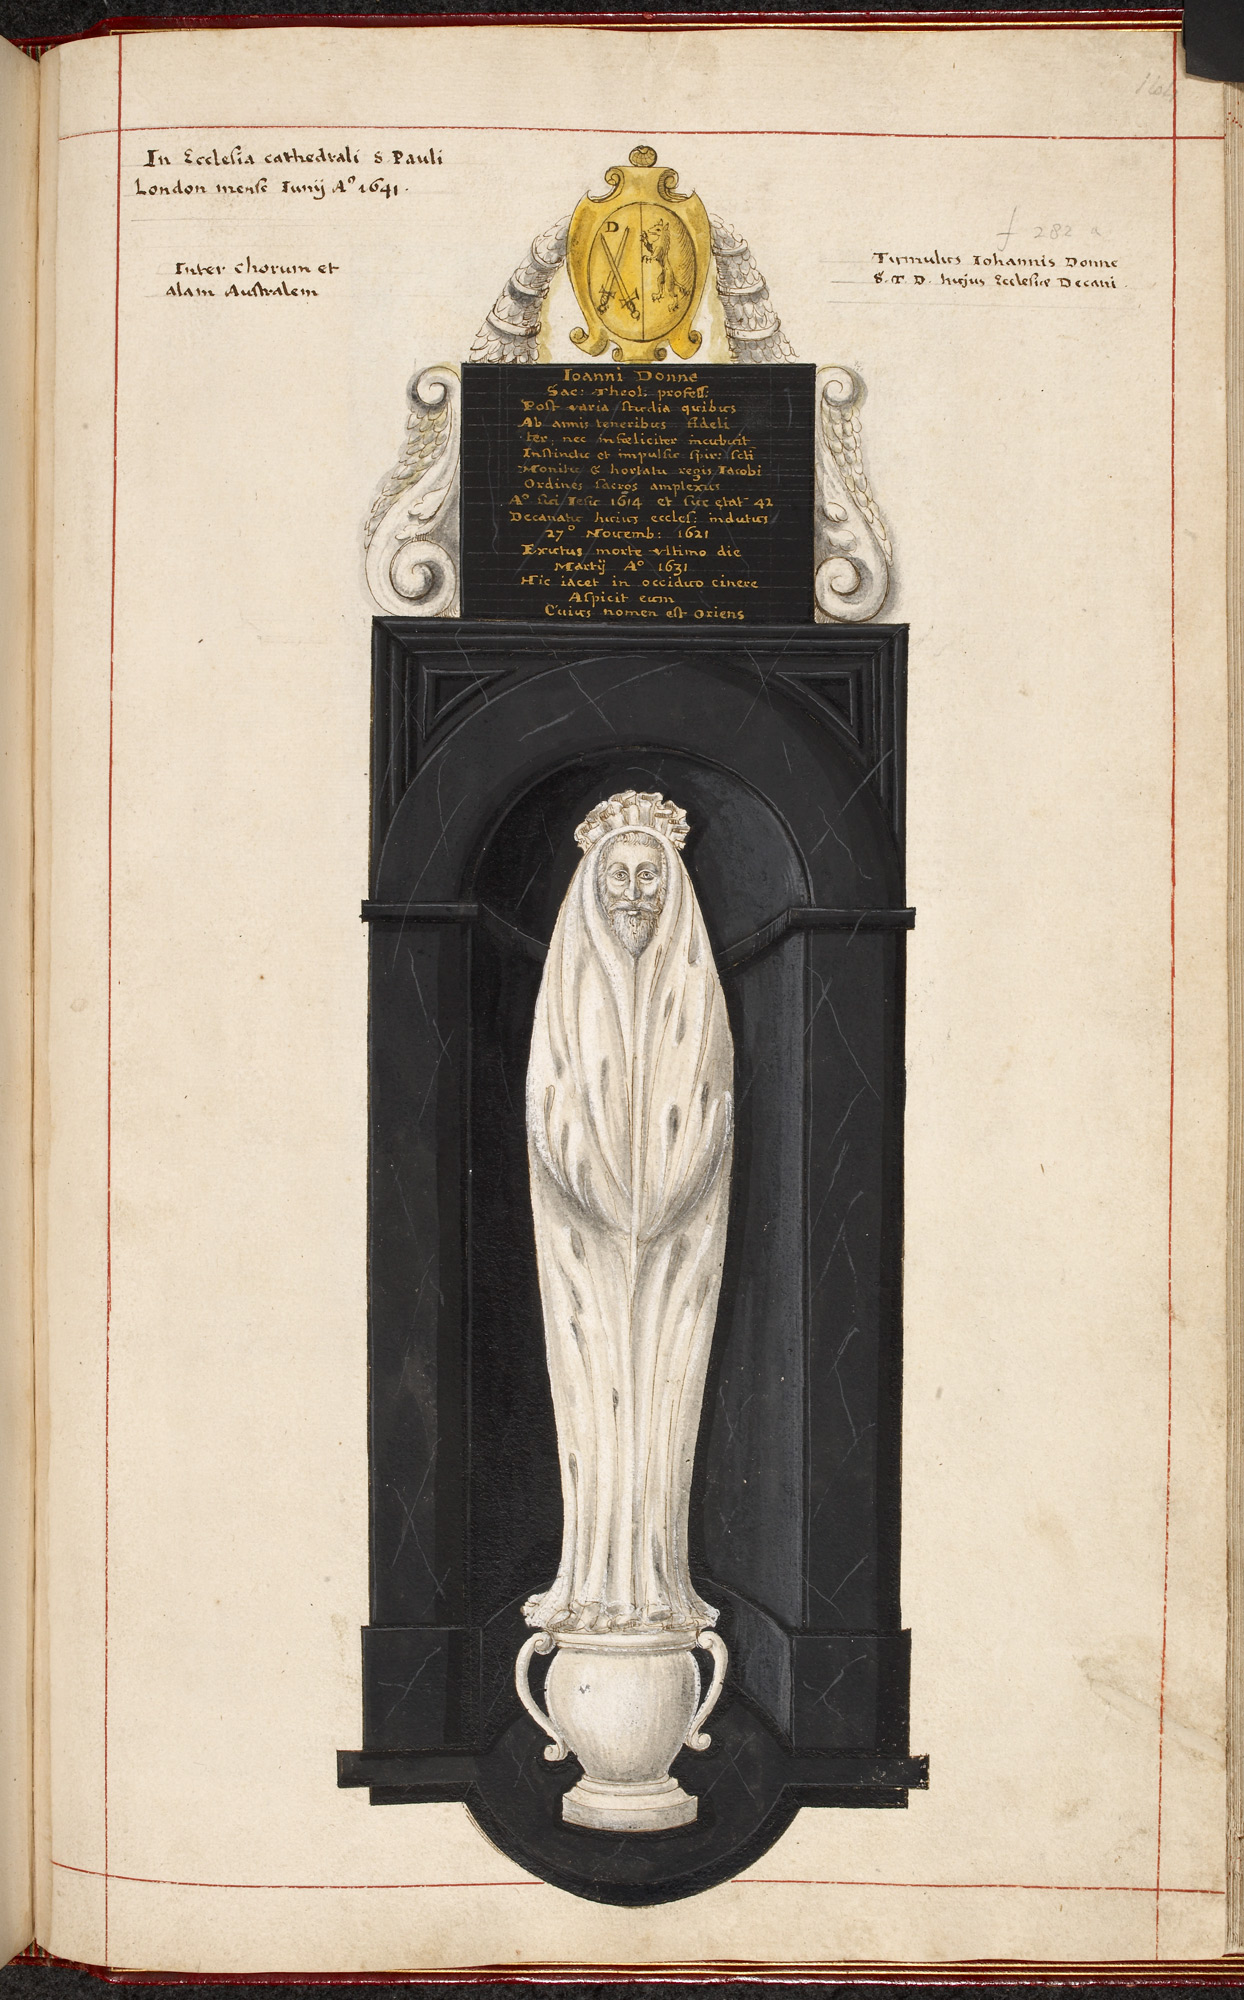 Drawing of the monument to John Donne in St Paul's Cathedral